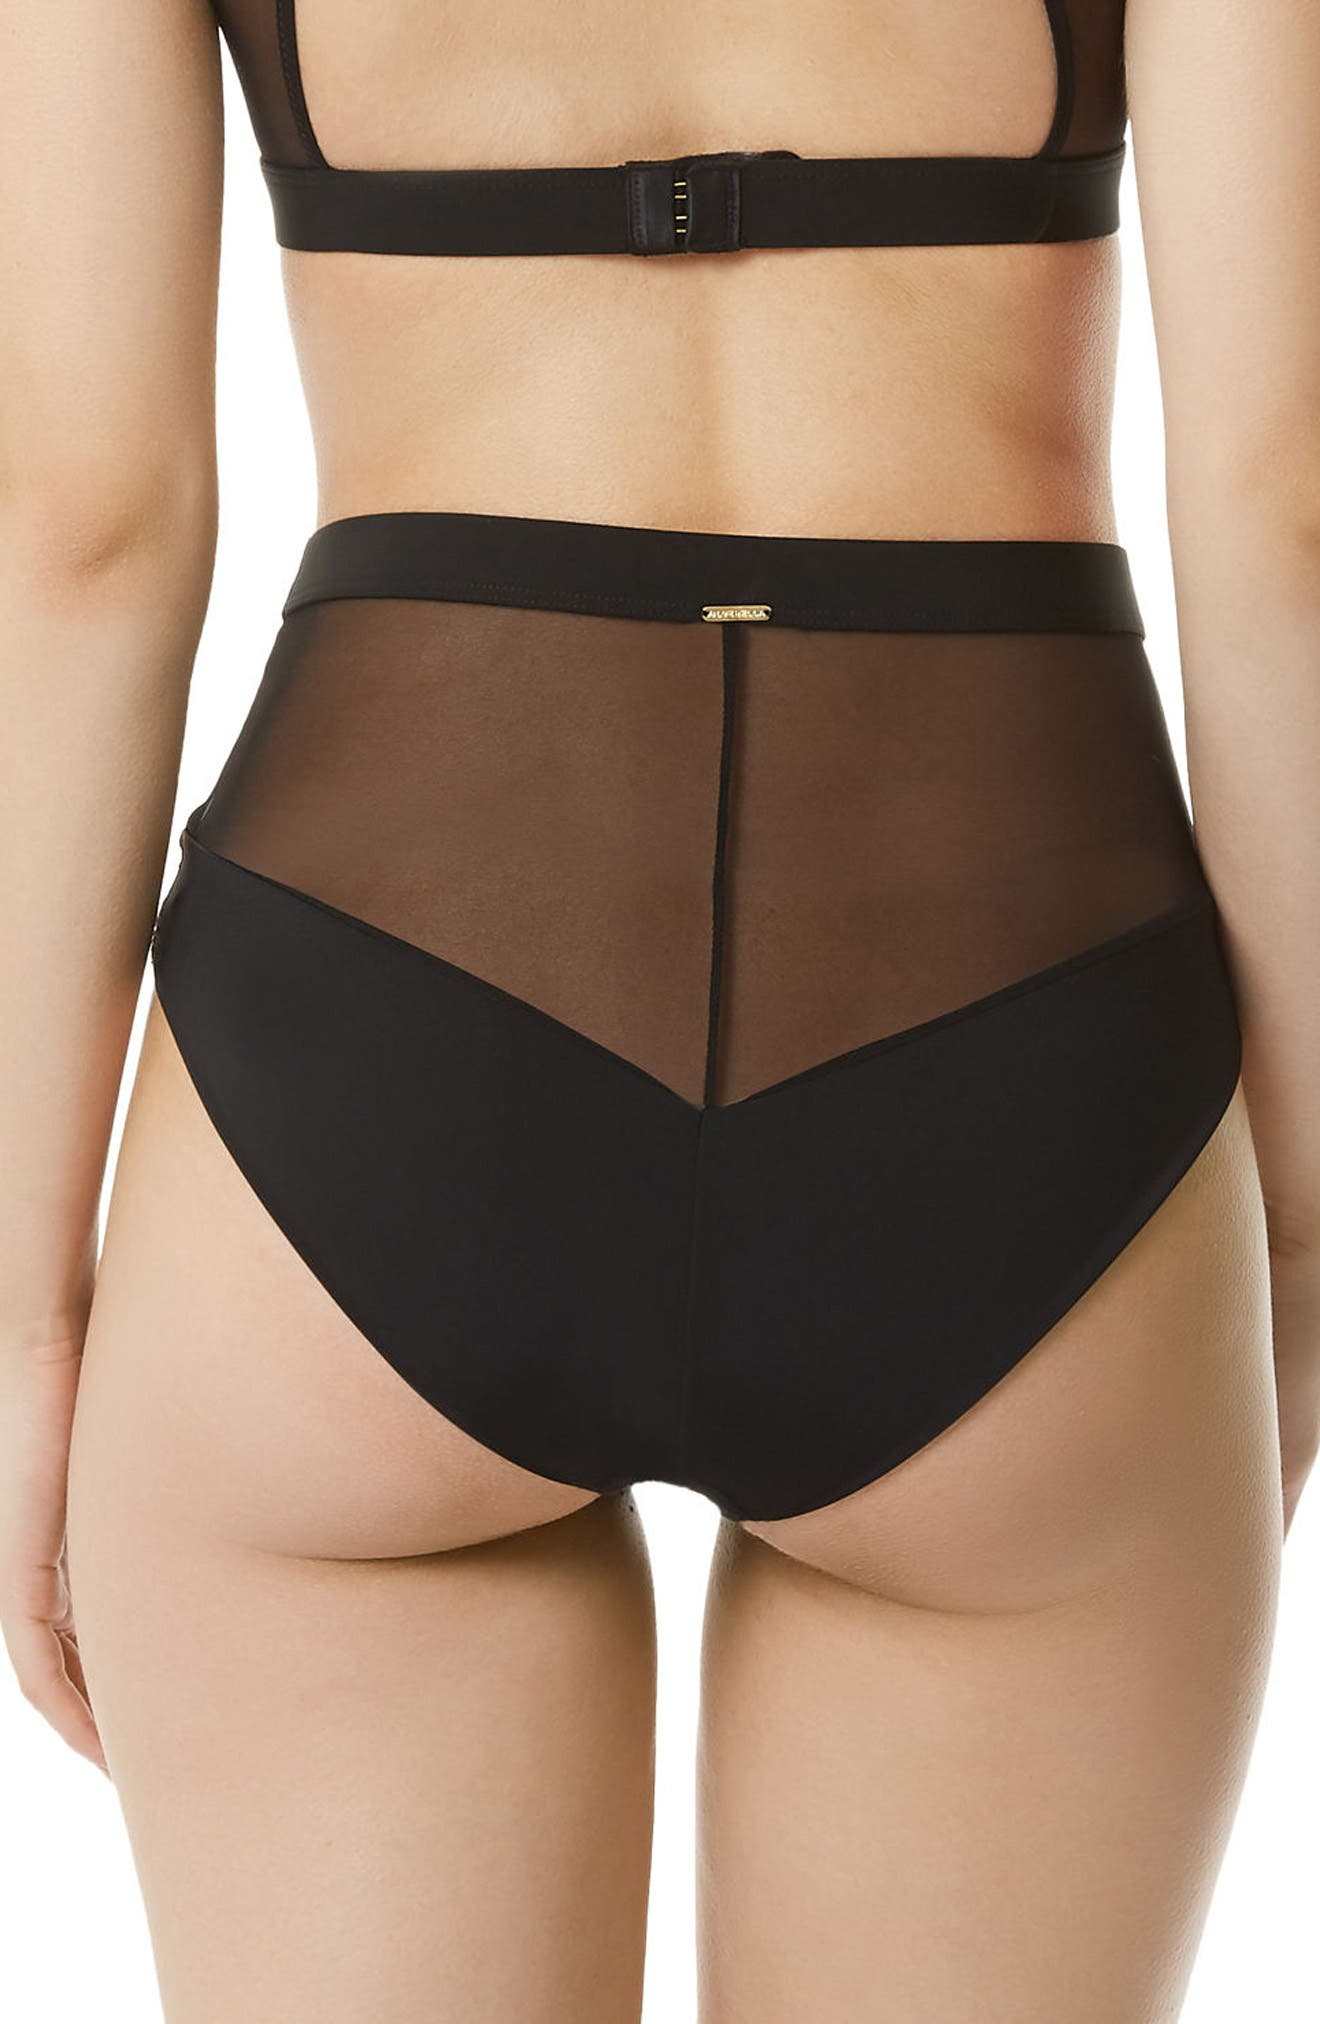 Reed High Waist Briefs,                             Alternate thumbnail 2, color,                             Black